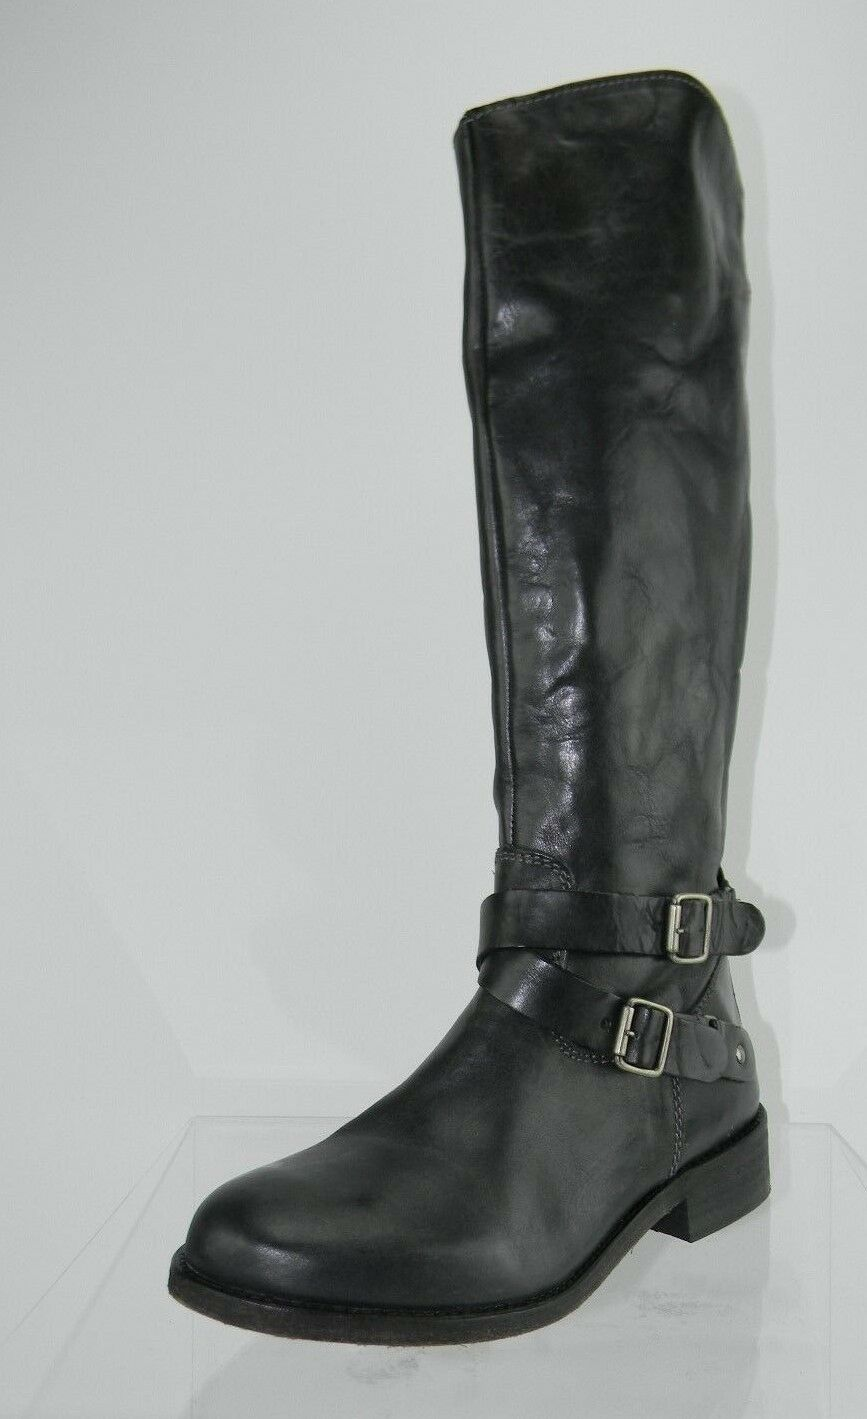 Womens Hinge Devin Black Knee High Boots Size 6 M